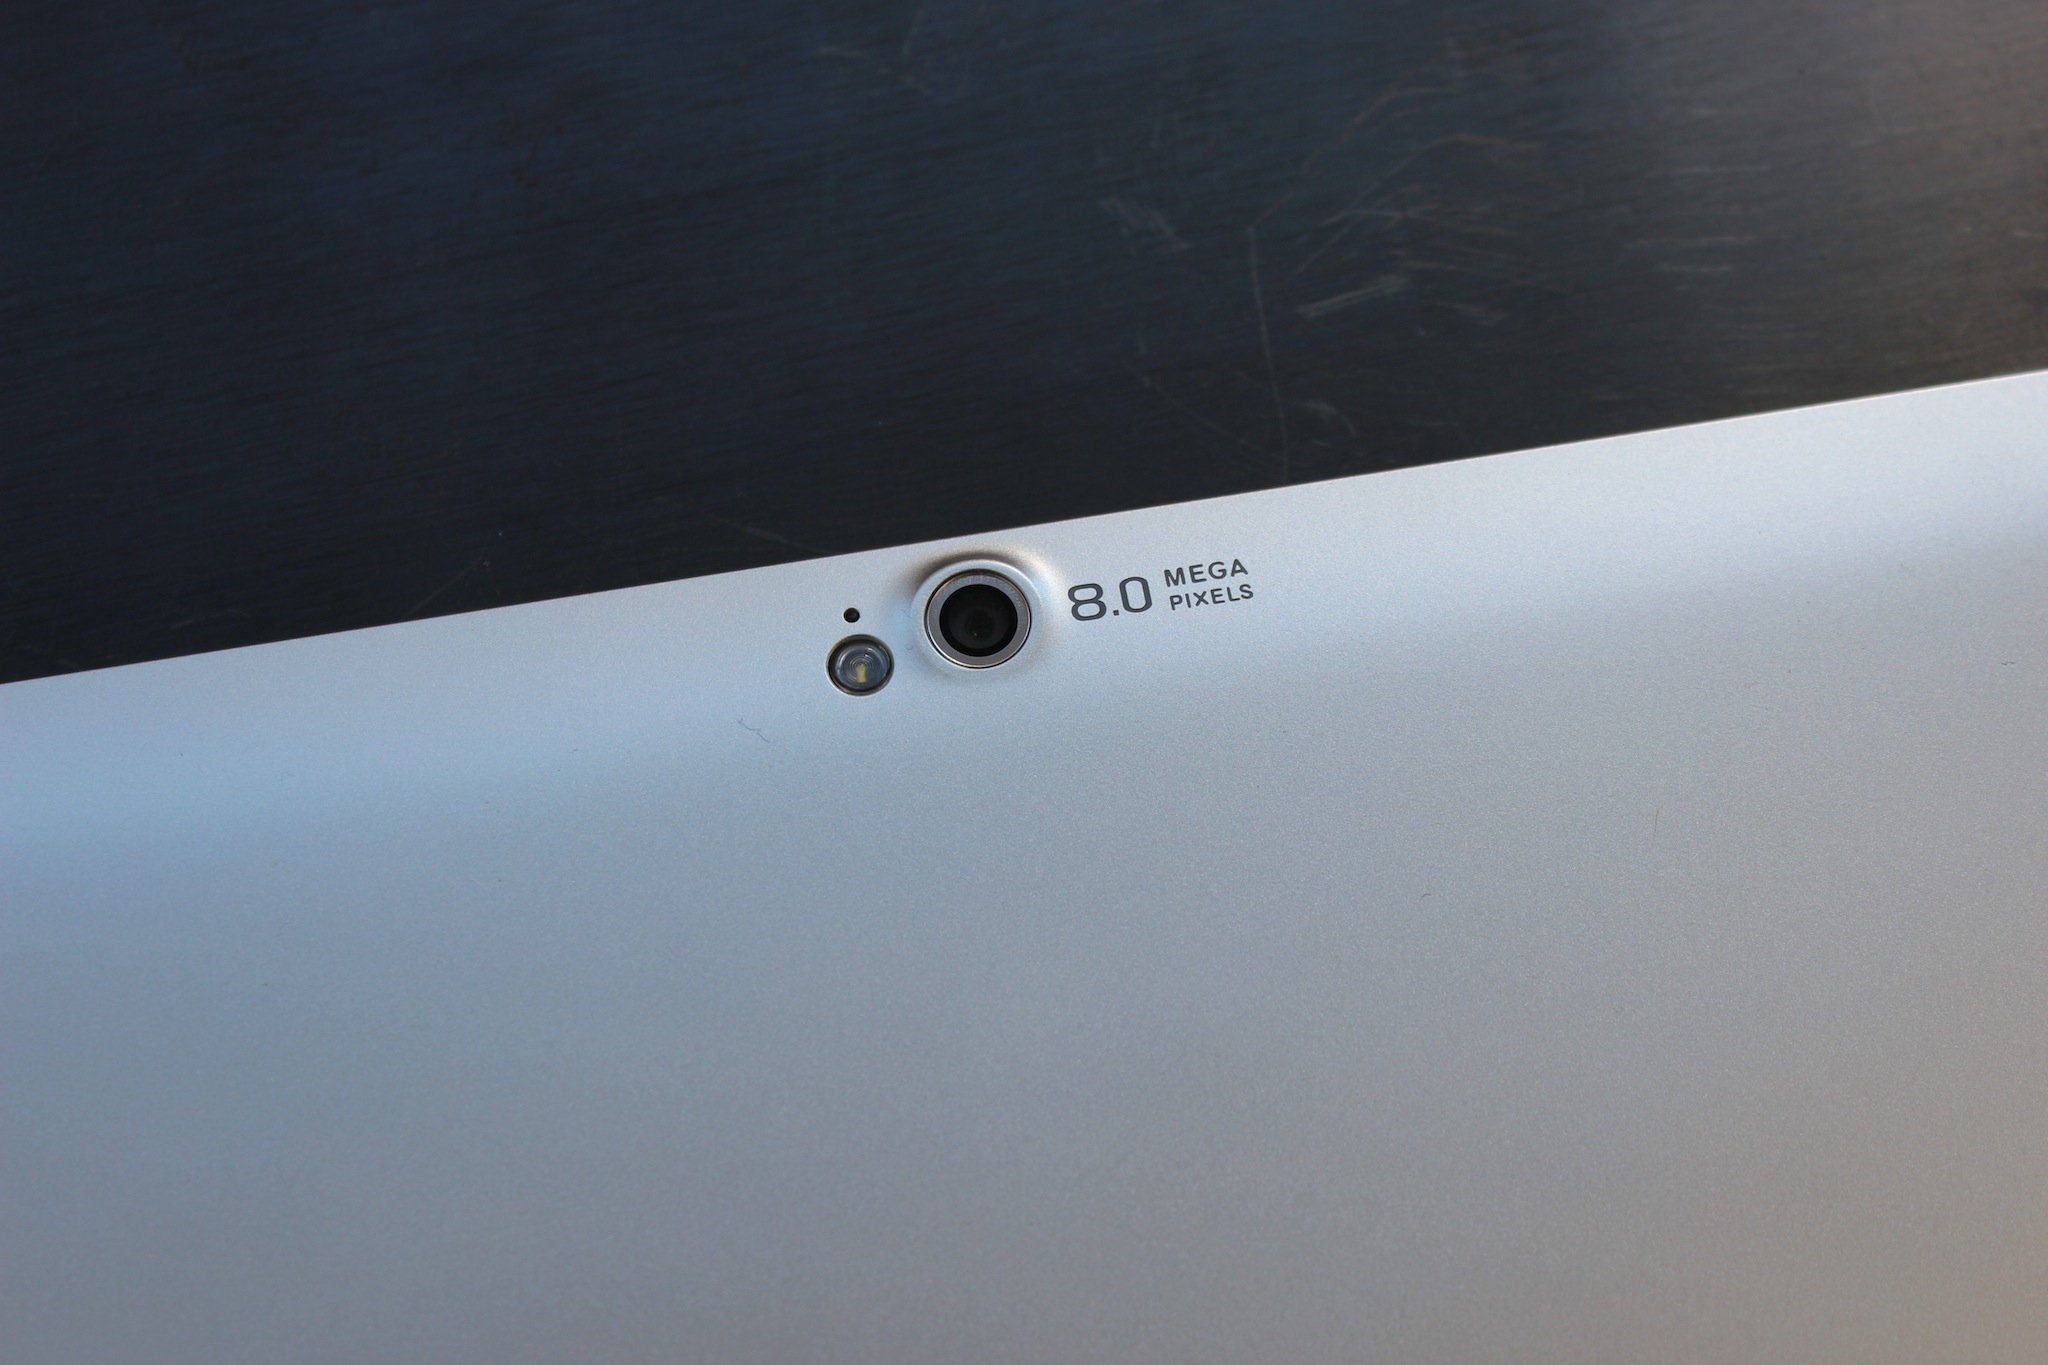 The 8 megapixel camera on the reverse side of the W510. The tablet also includes a 2 megapixel camera on the front.